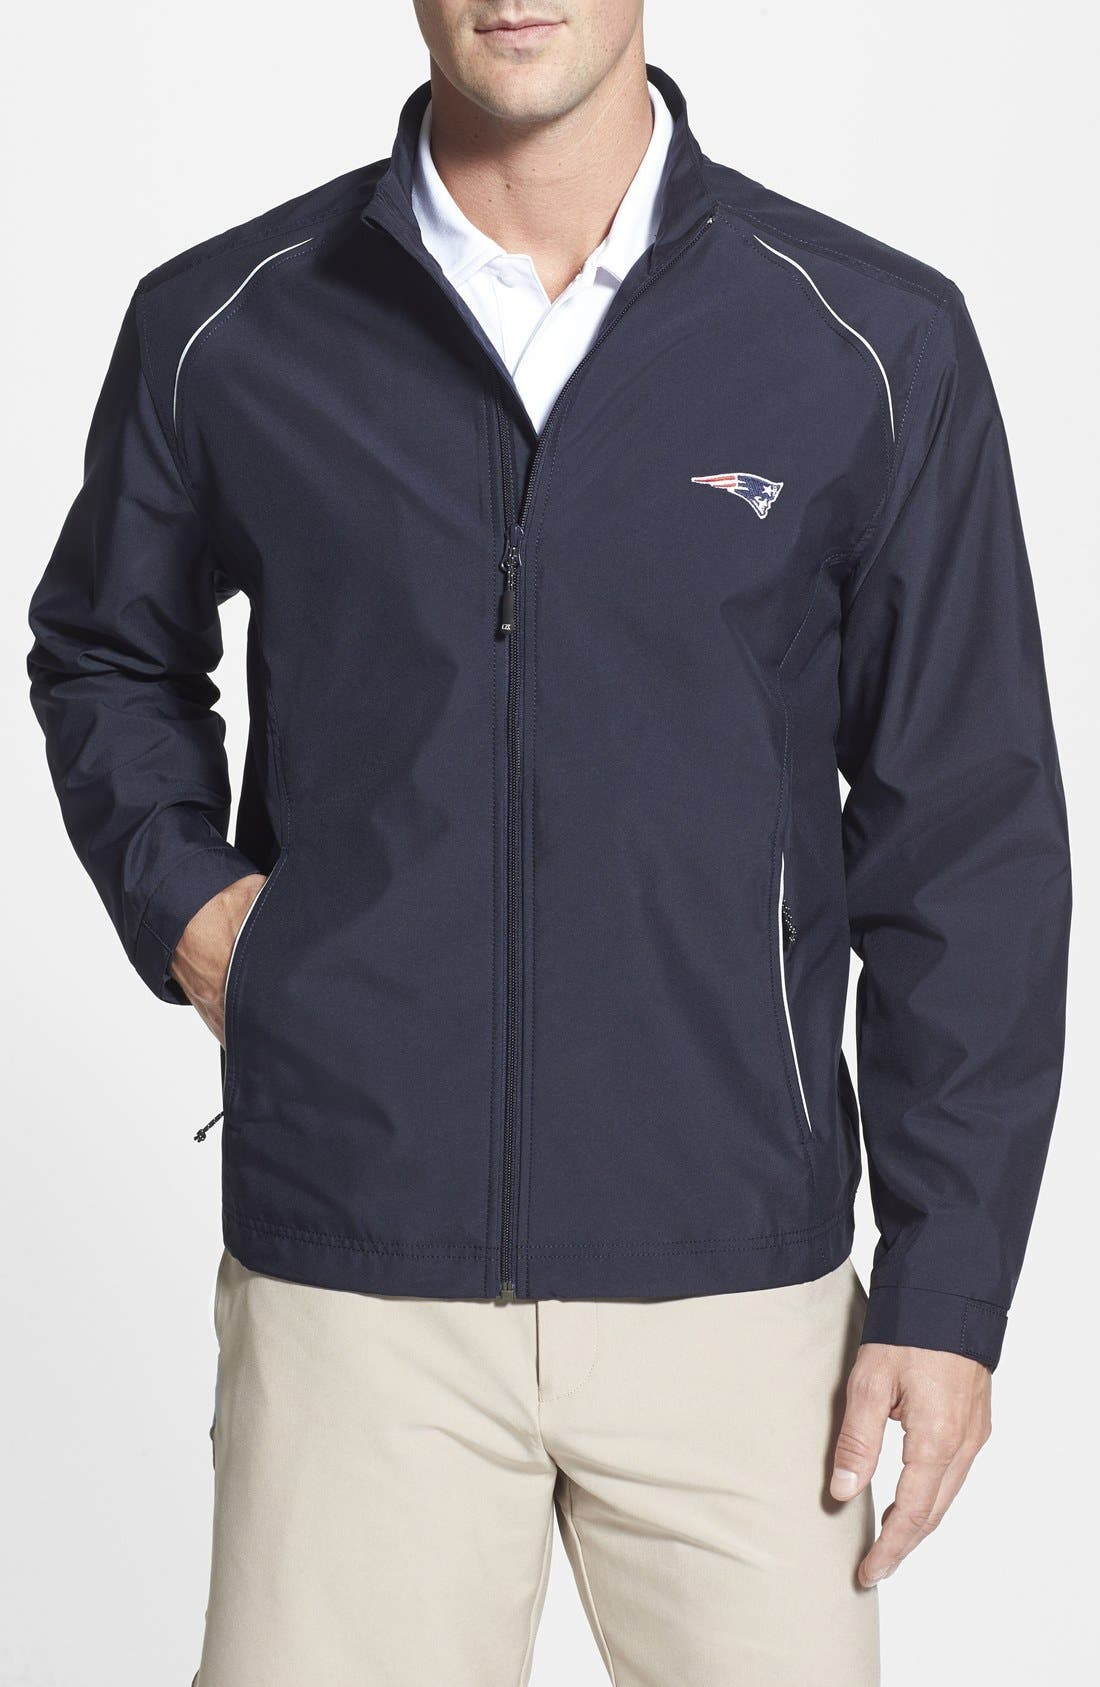 New England Patriots - Beacon WeatherTec Wind & Water Resistant Jacket,                             Main thumbnail 1, color,                             420